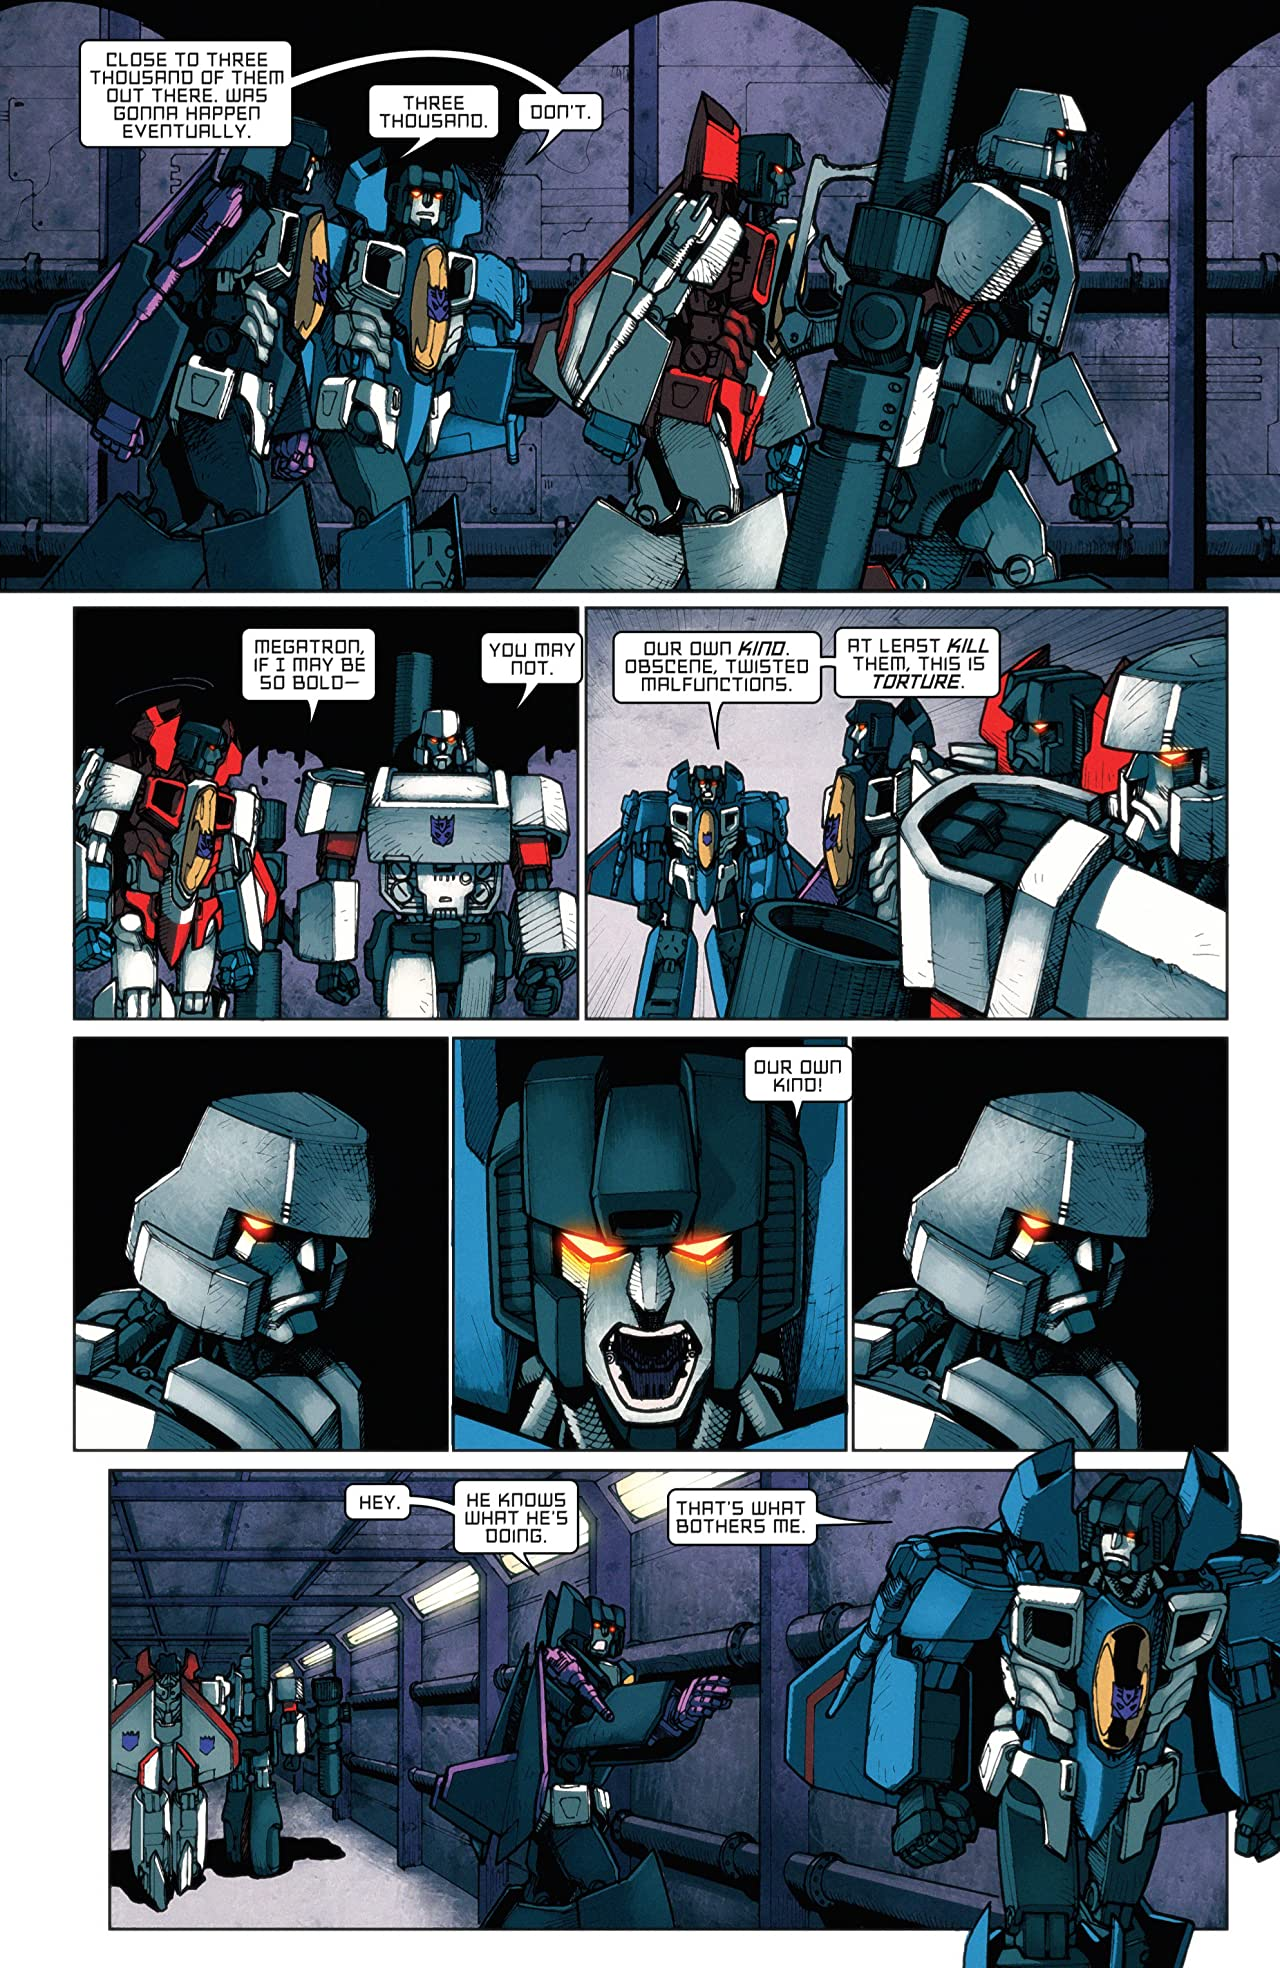 Transformers: All Hail Megatron #7